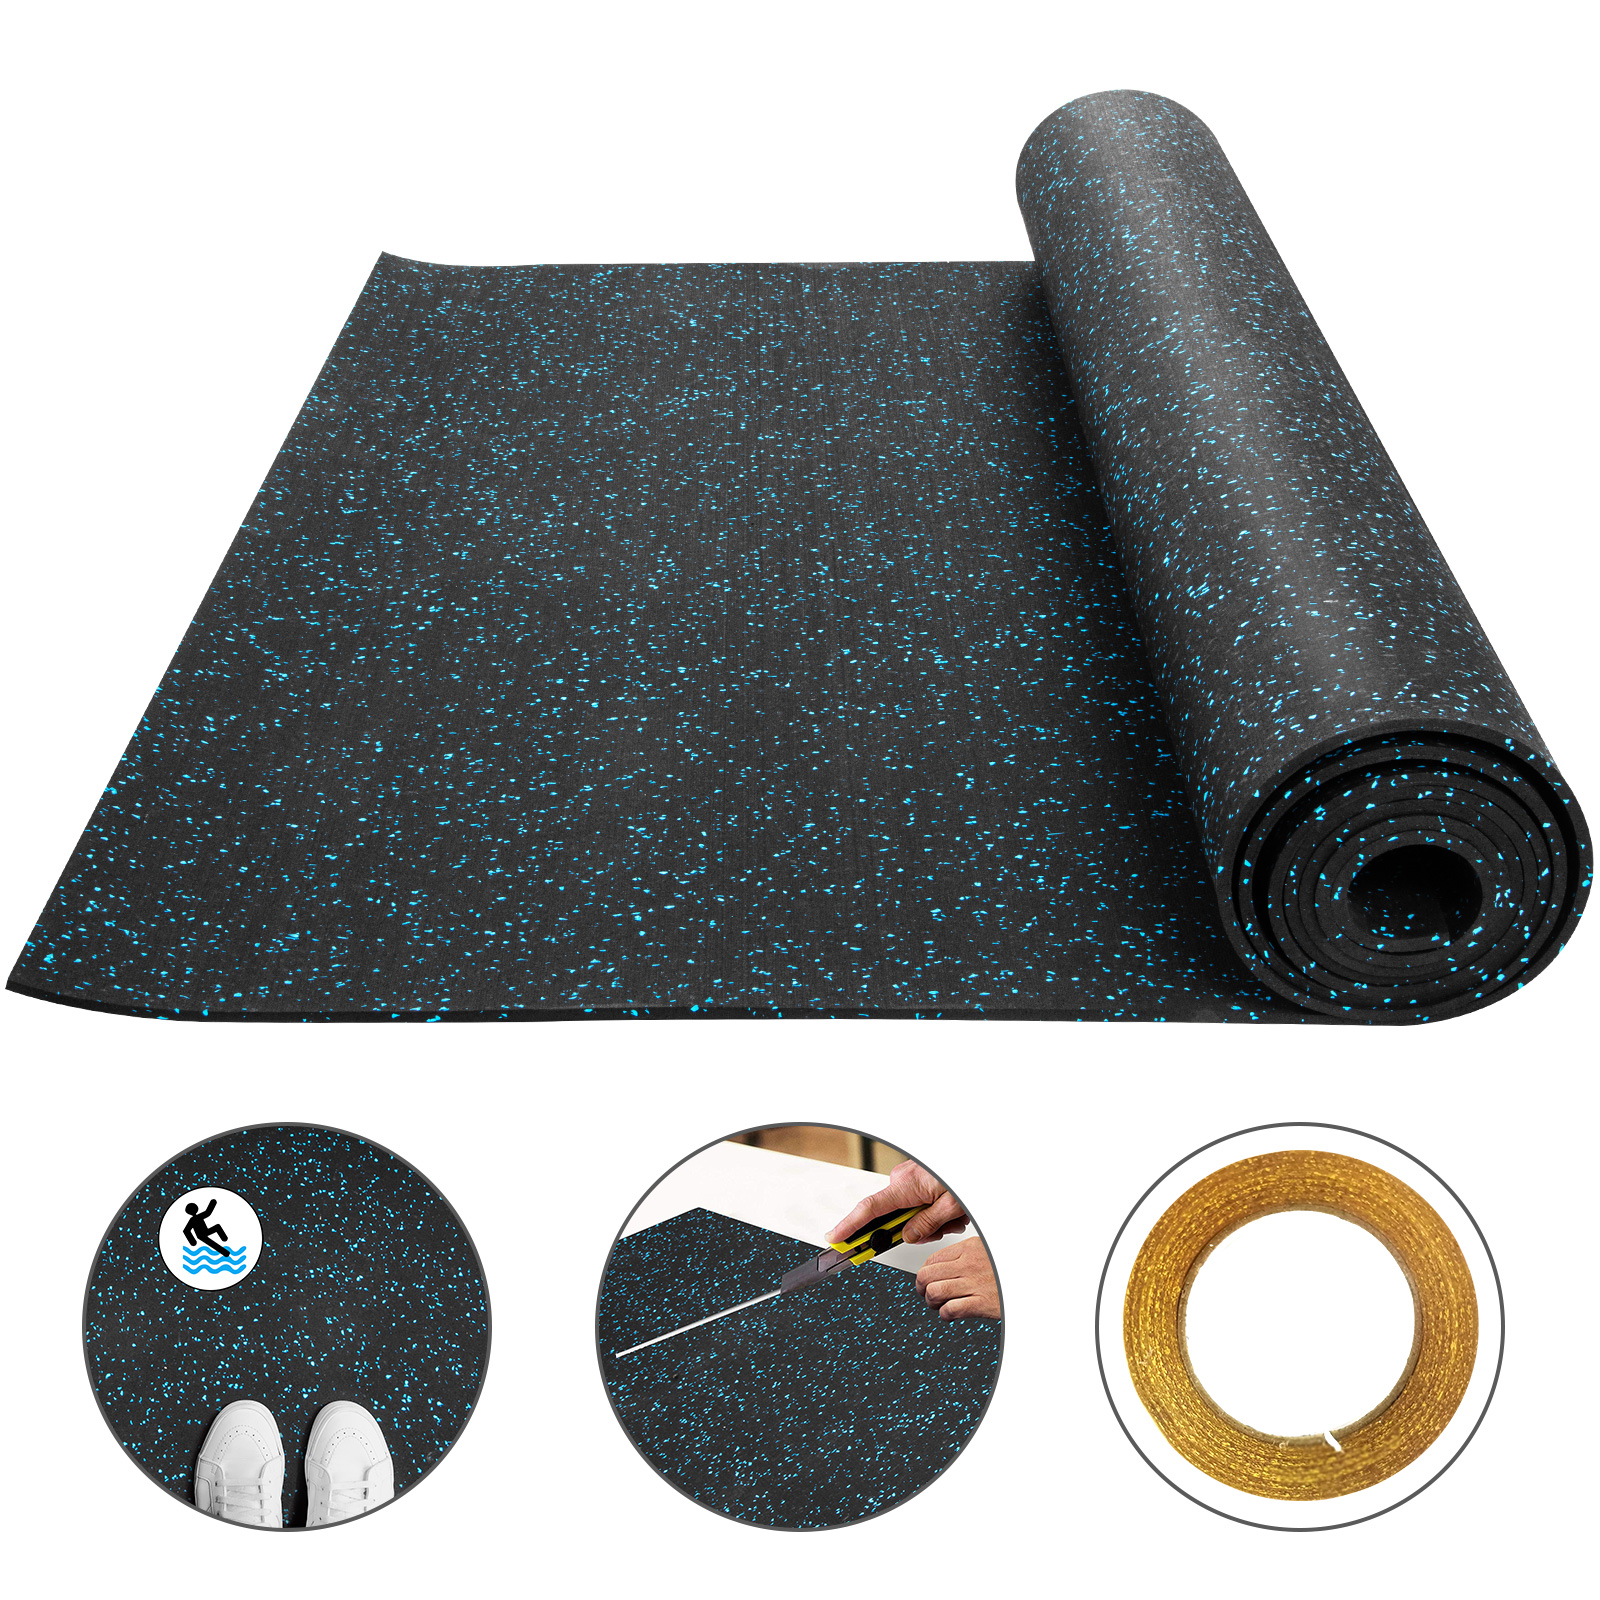 Rubber Mats Flooring Rolls For Floor